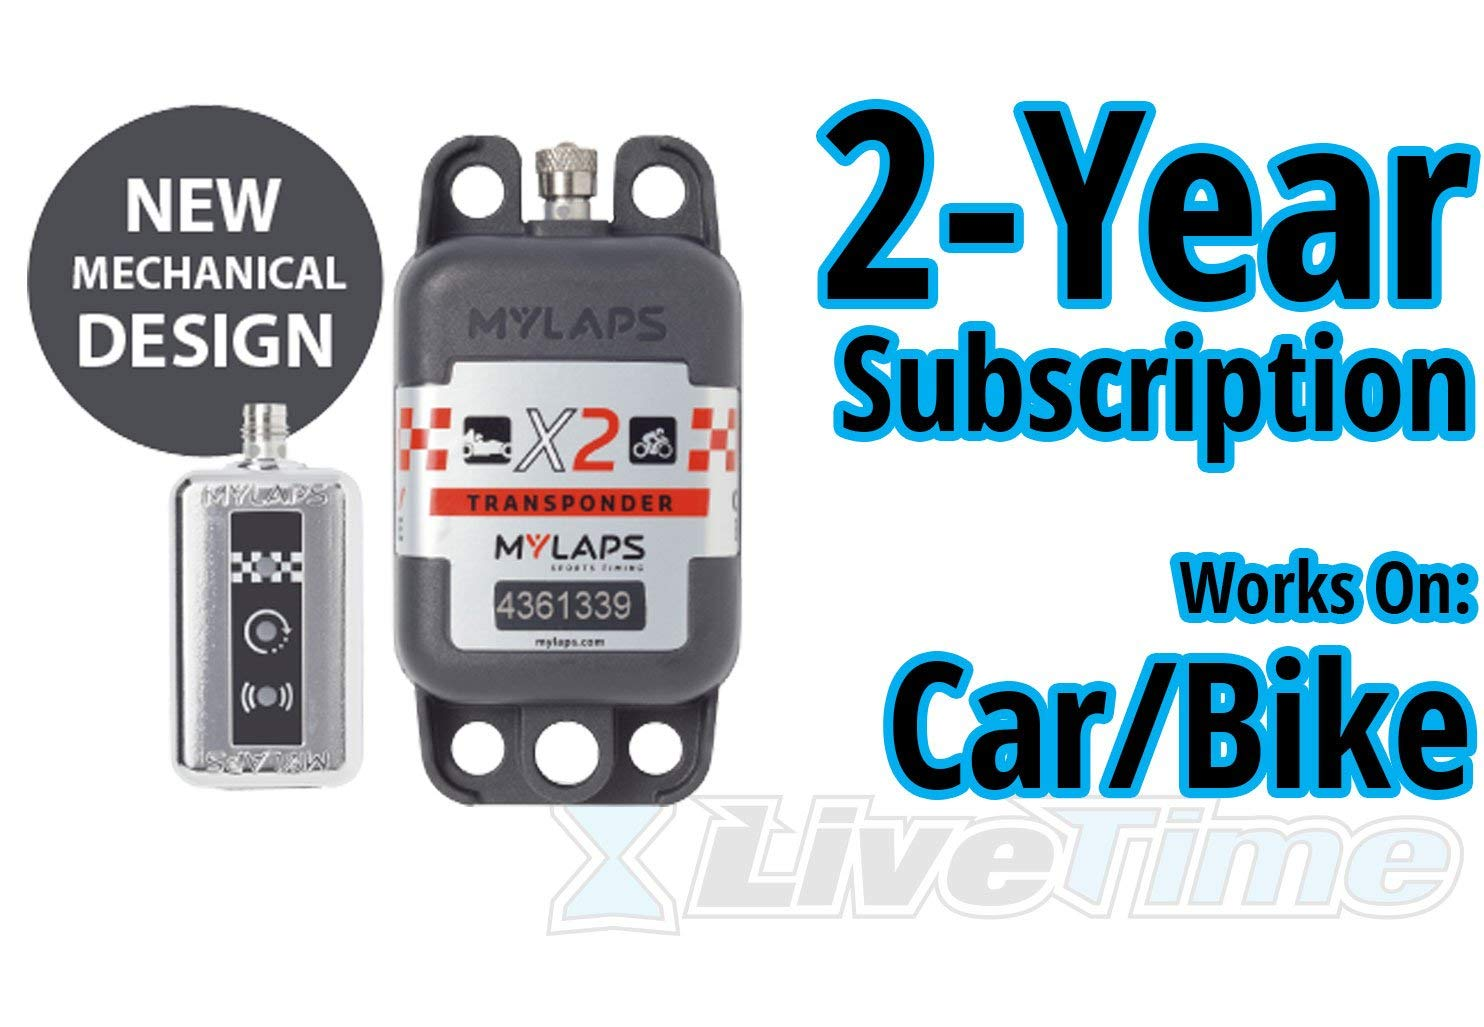 MyLaps X2 Transponder, Rechargeable, for Car/Bike, includes 2-Year Subscription